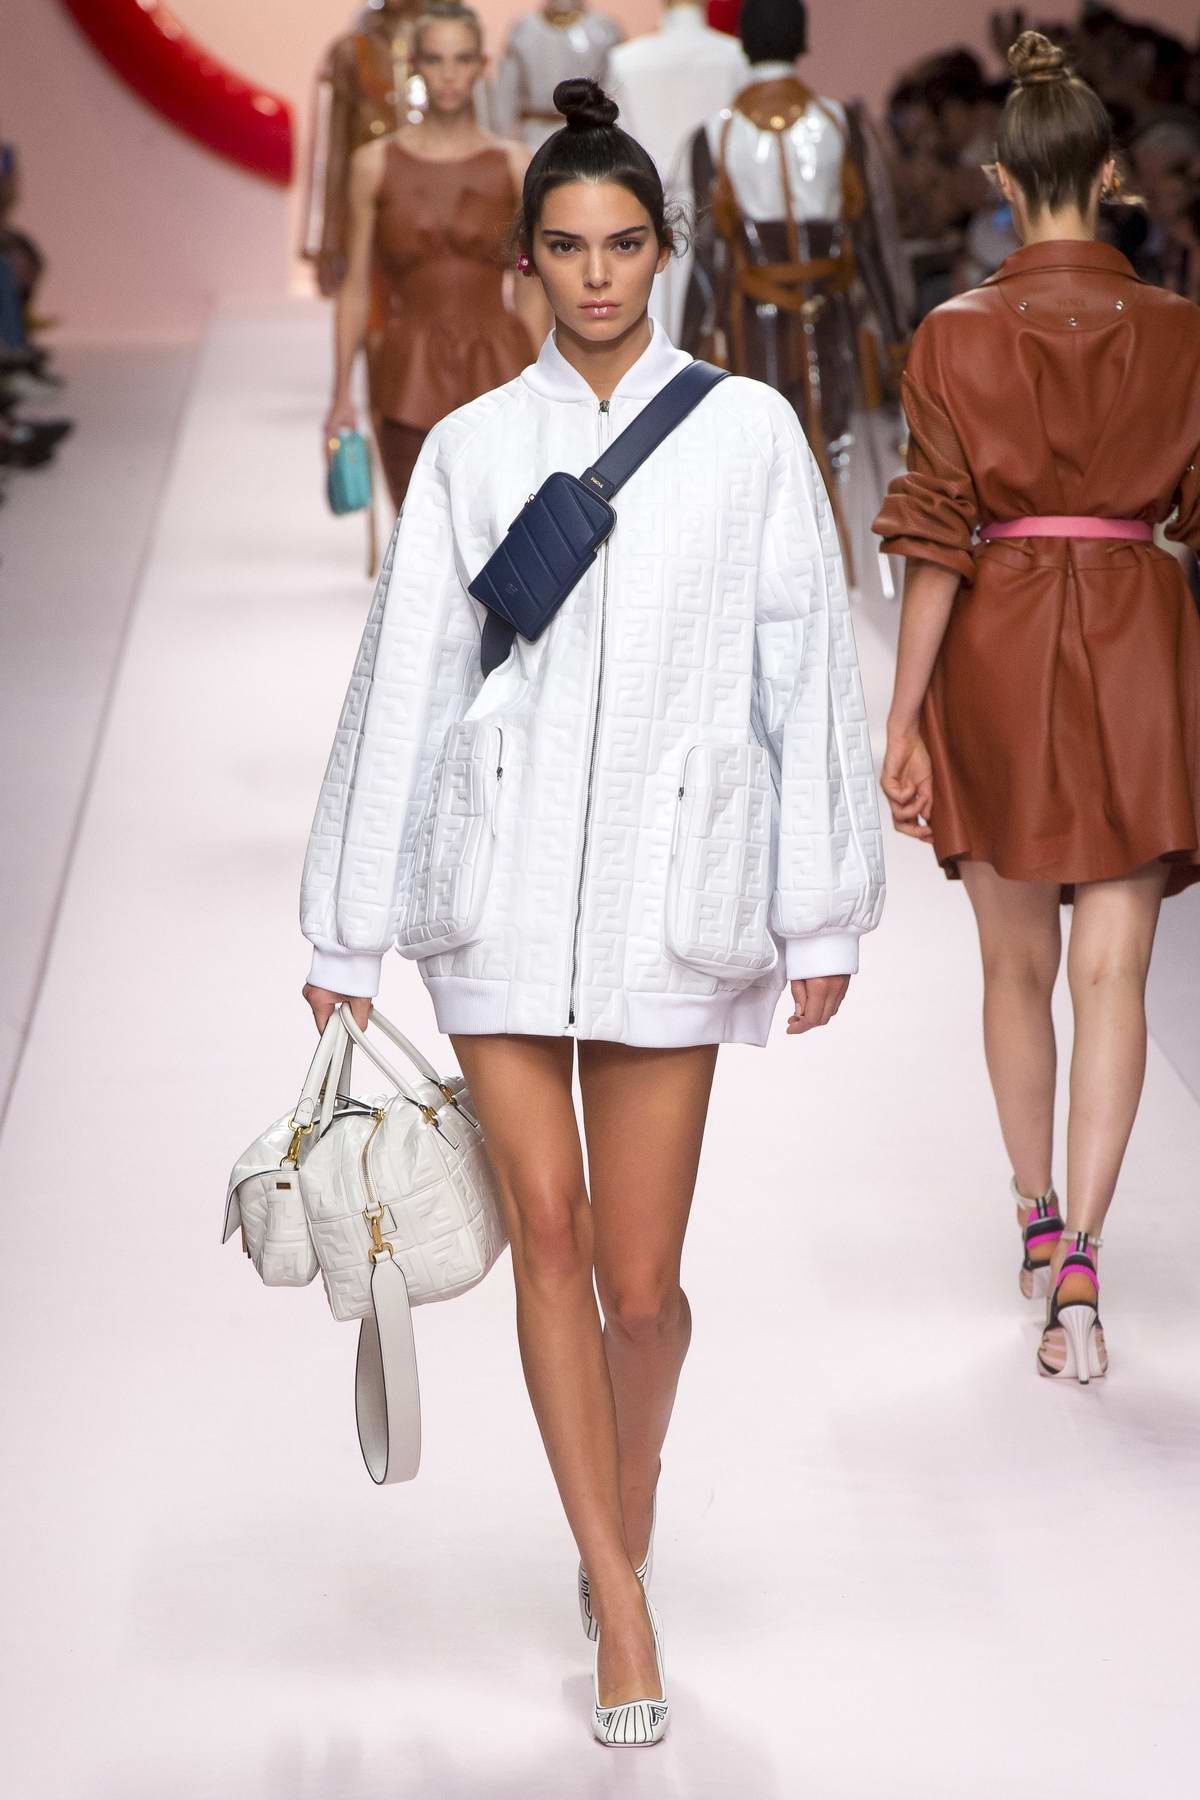 Kendall Jenner walks the runway for Fendi Fashion Show